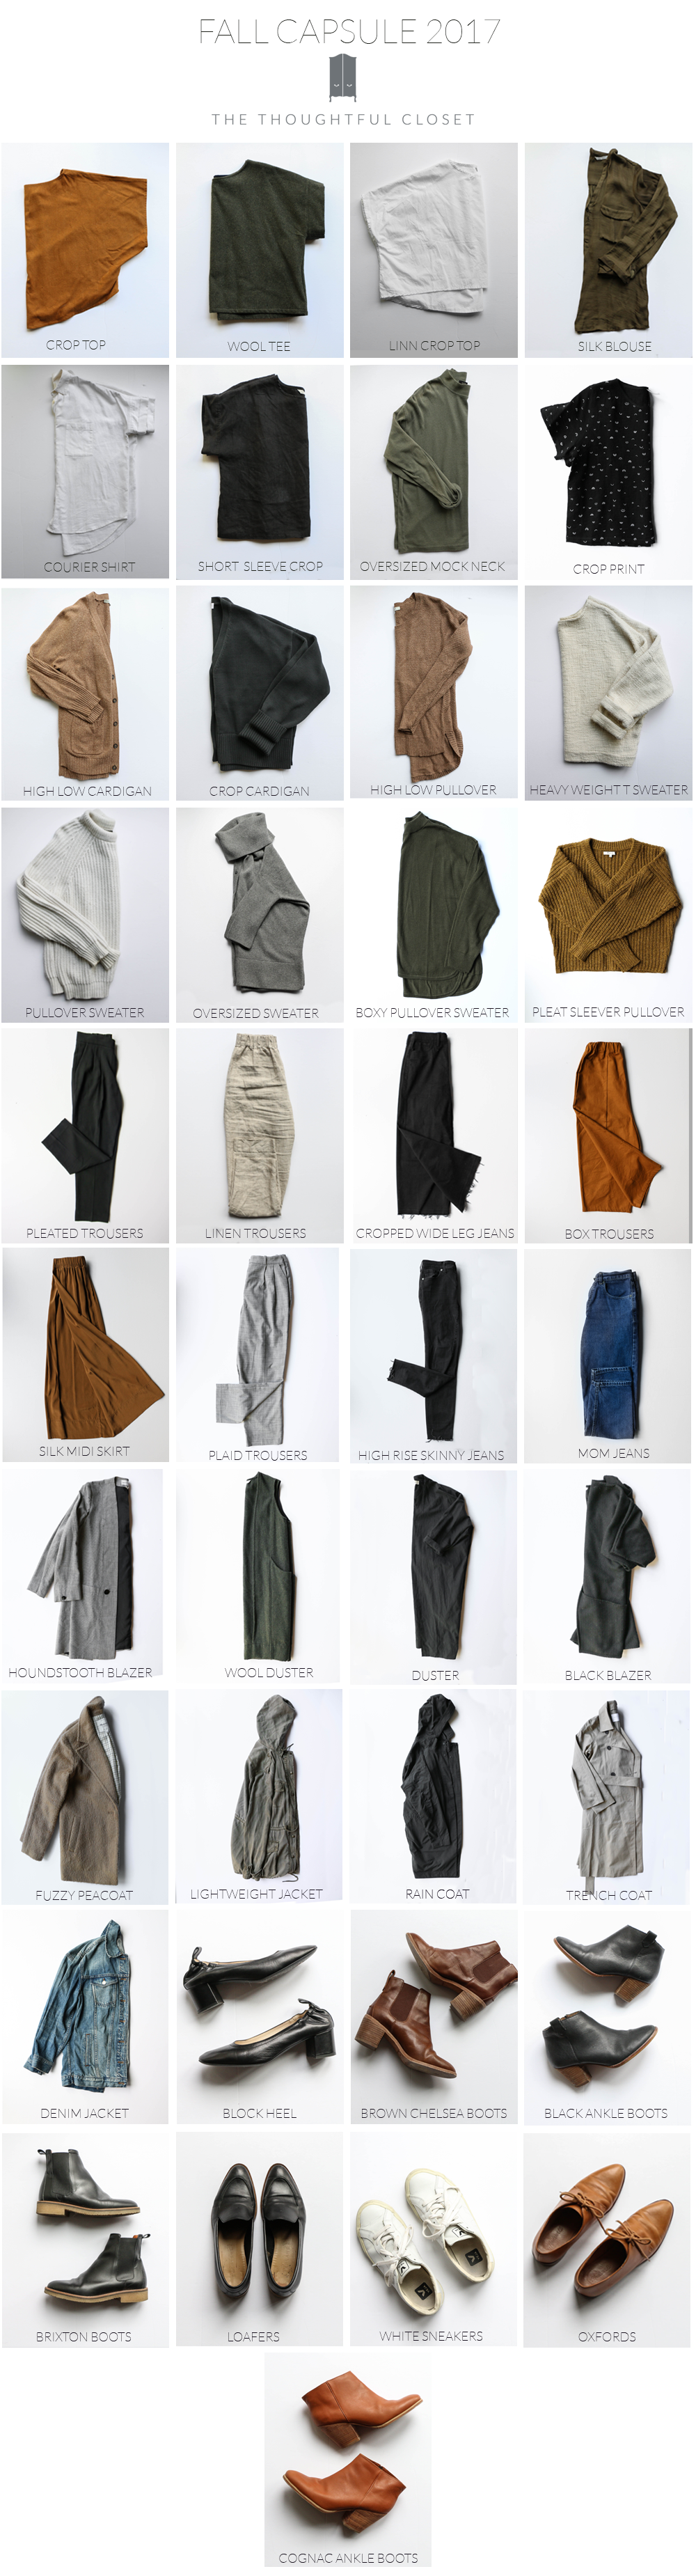 the-thoughtful-closet_fall-capsule-wrap-up-2017.png